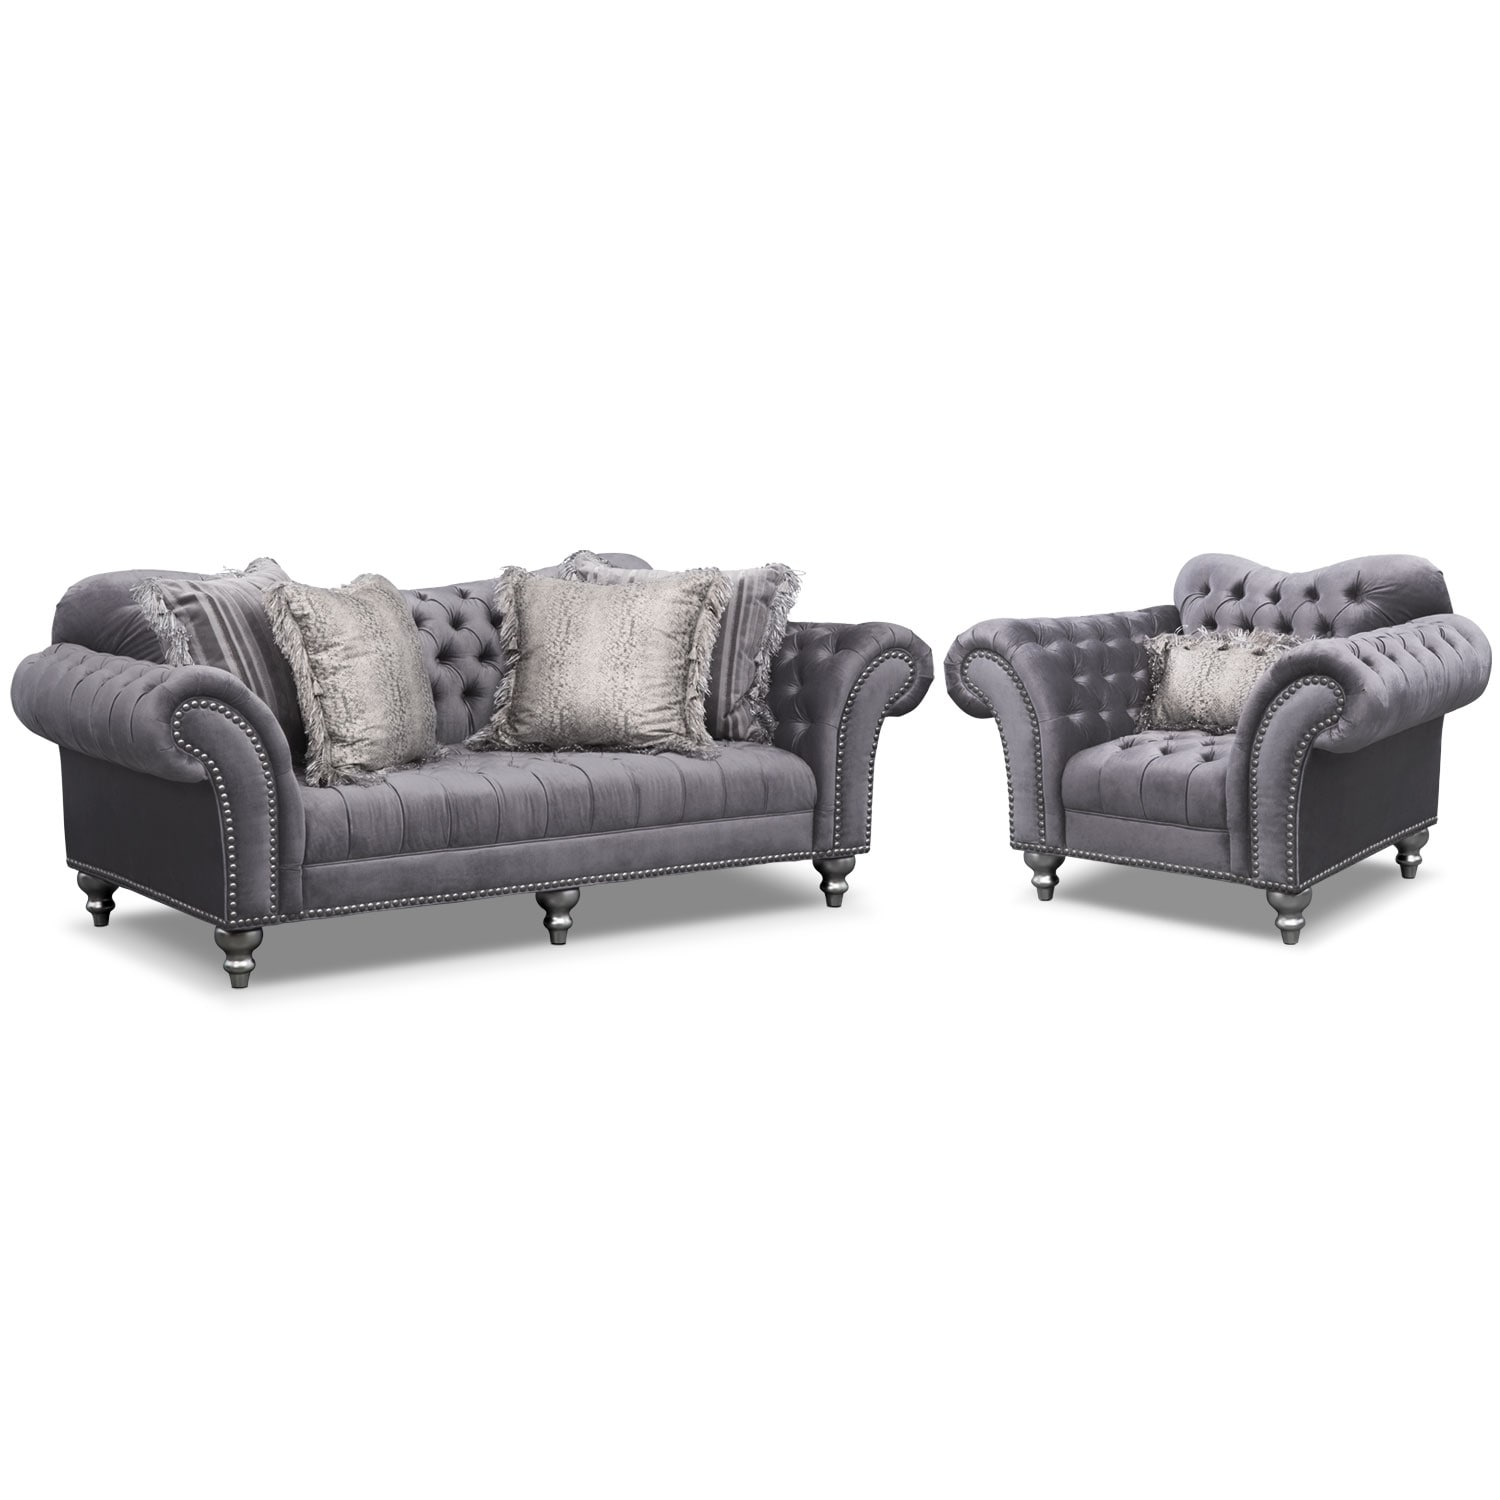 The Brittney Living Room Collection - Gray | American Signature ...